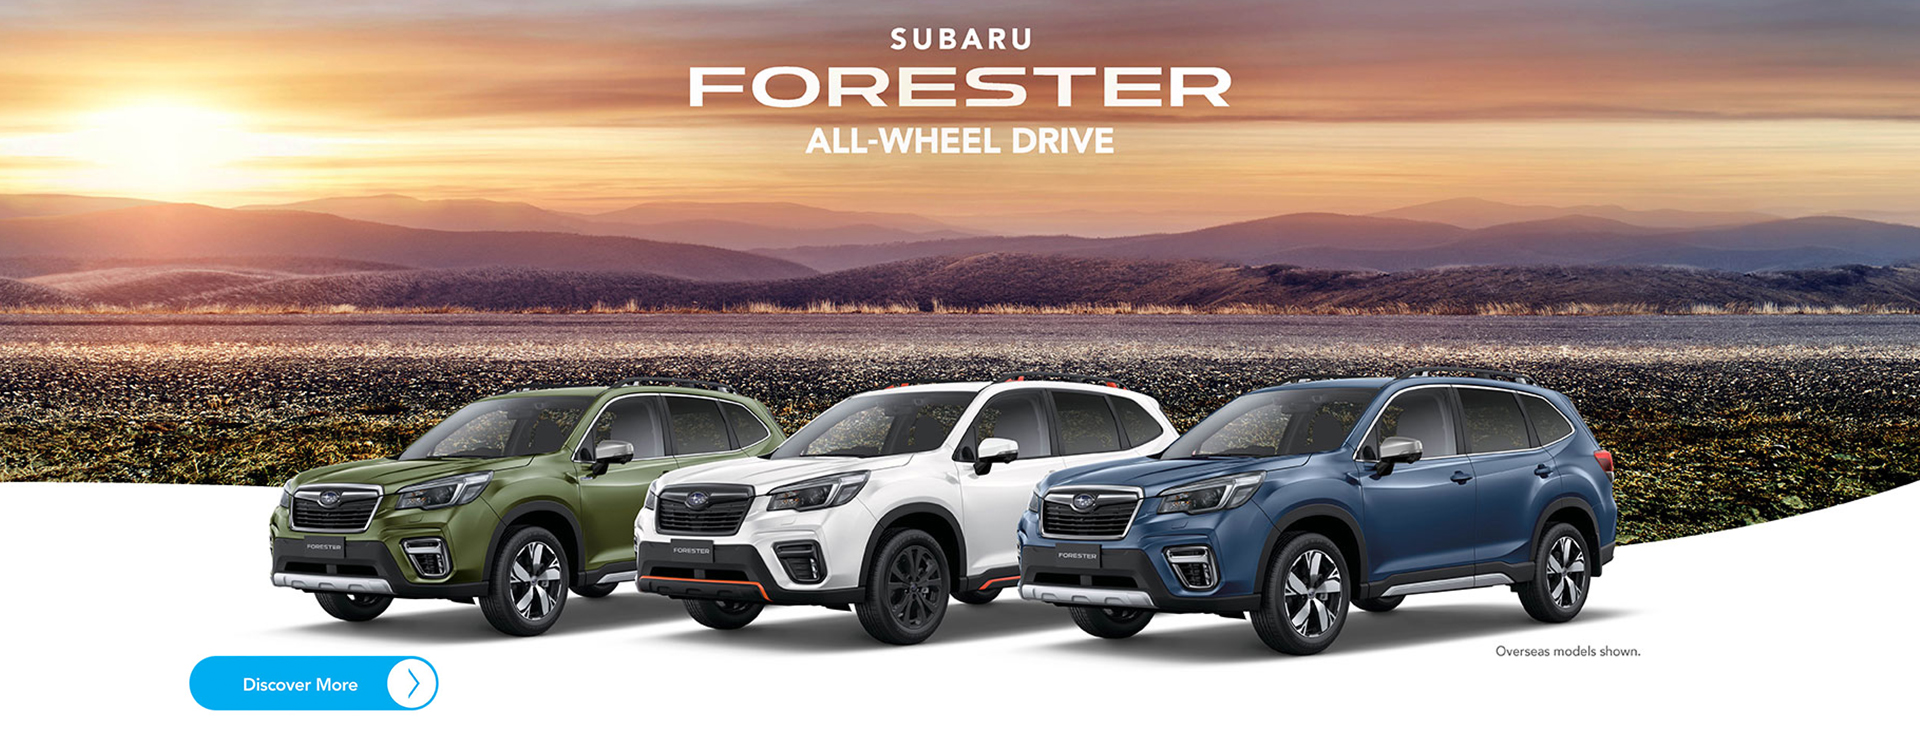 New Subaru Forester, including Hybrid e-Boxer, now available at Subaru Darwin. Test Drive Today!